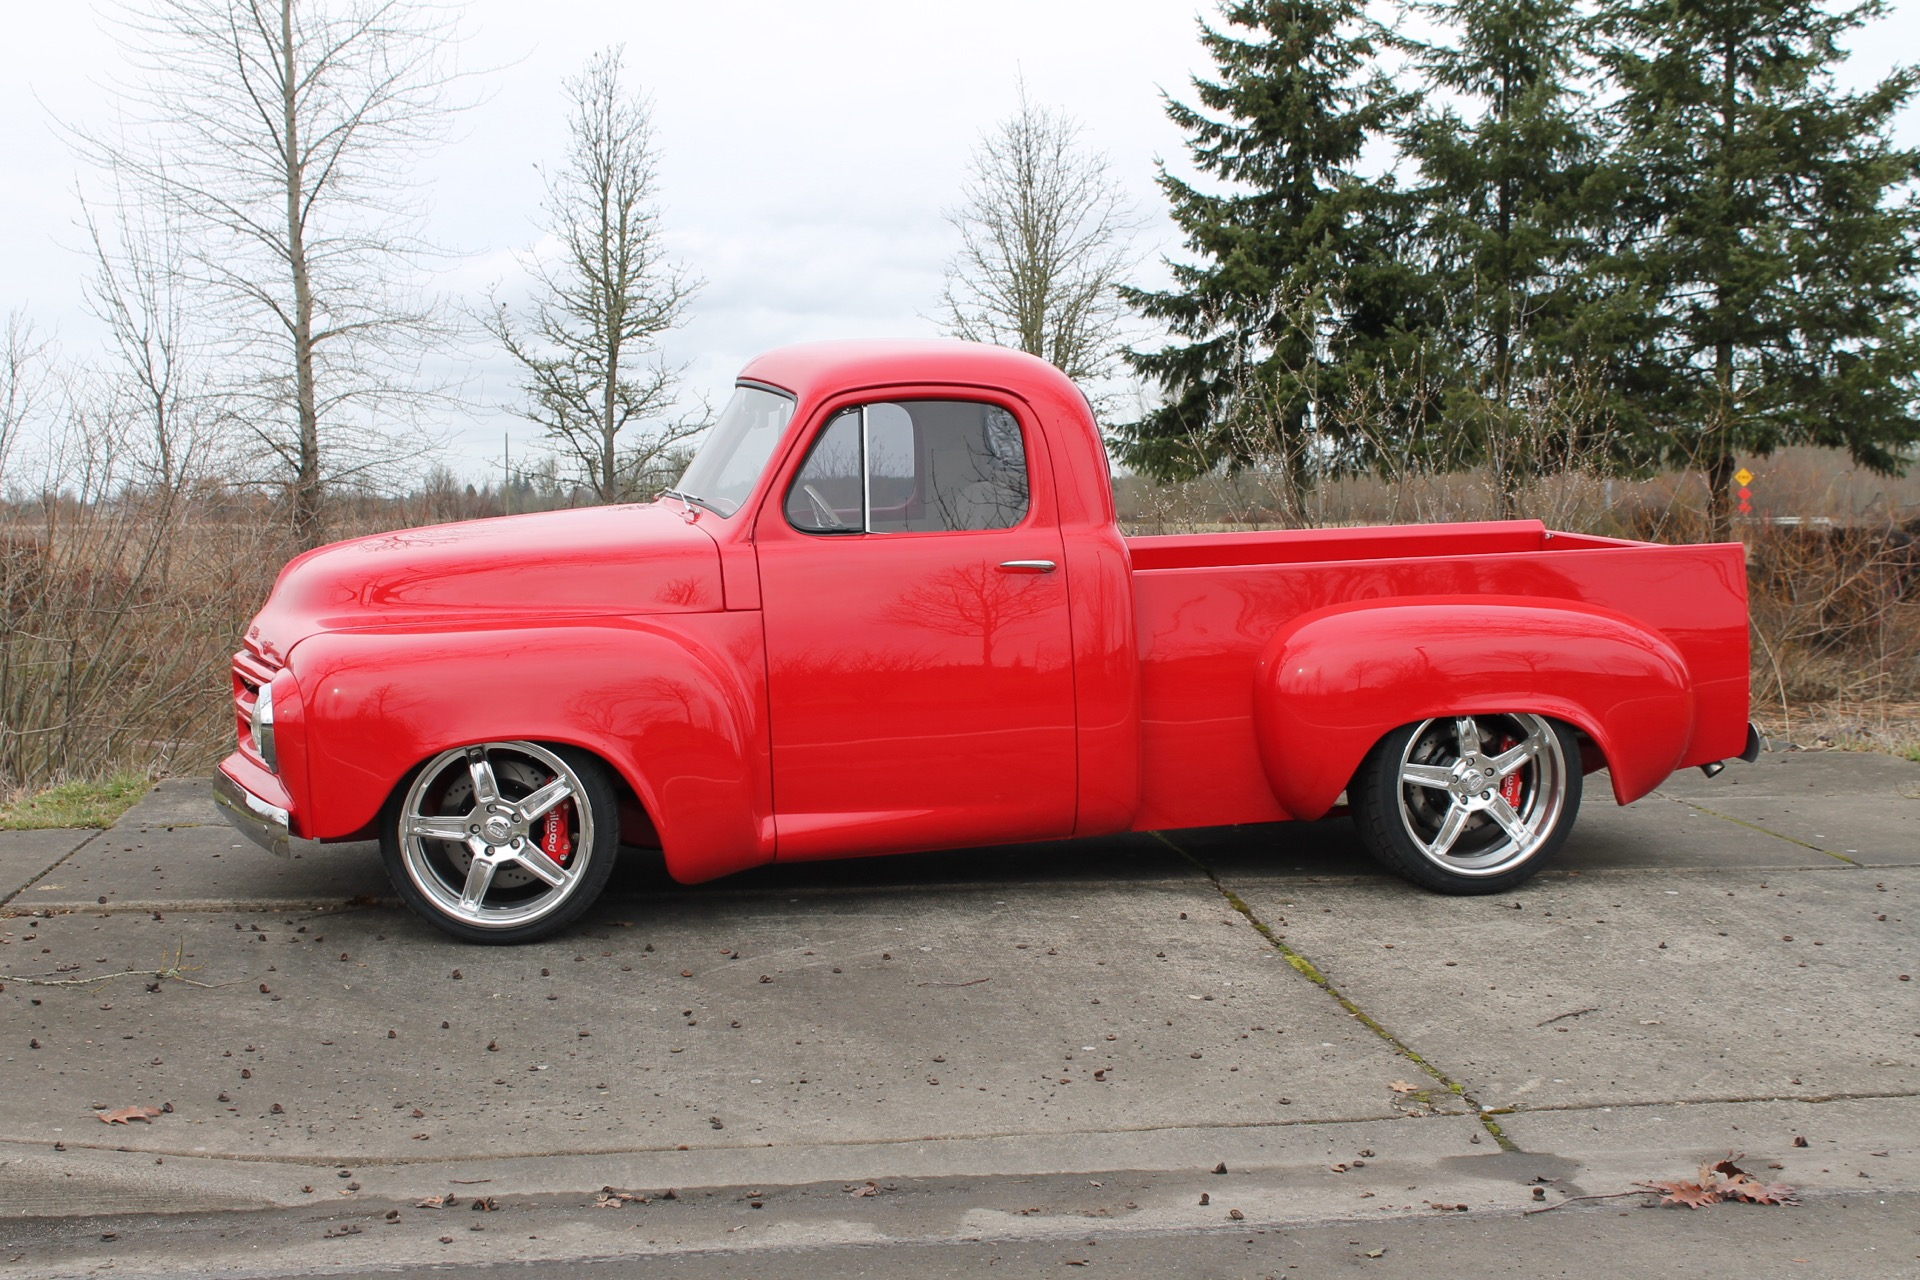 The 10 Ugliest Wedding Cakes Ever additionally New Products together with 1948 Hudson  adoor Truck Rad Rod Project in addition Watch as well 79 Ford F150. on truck floor pans